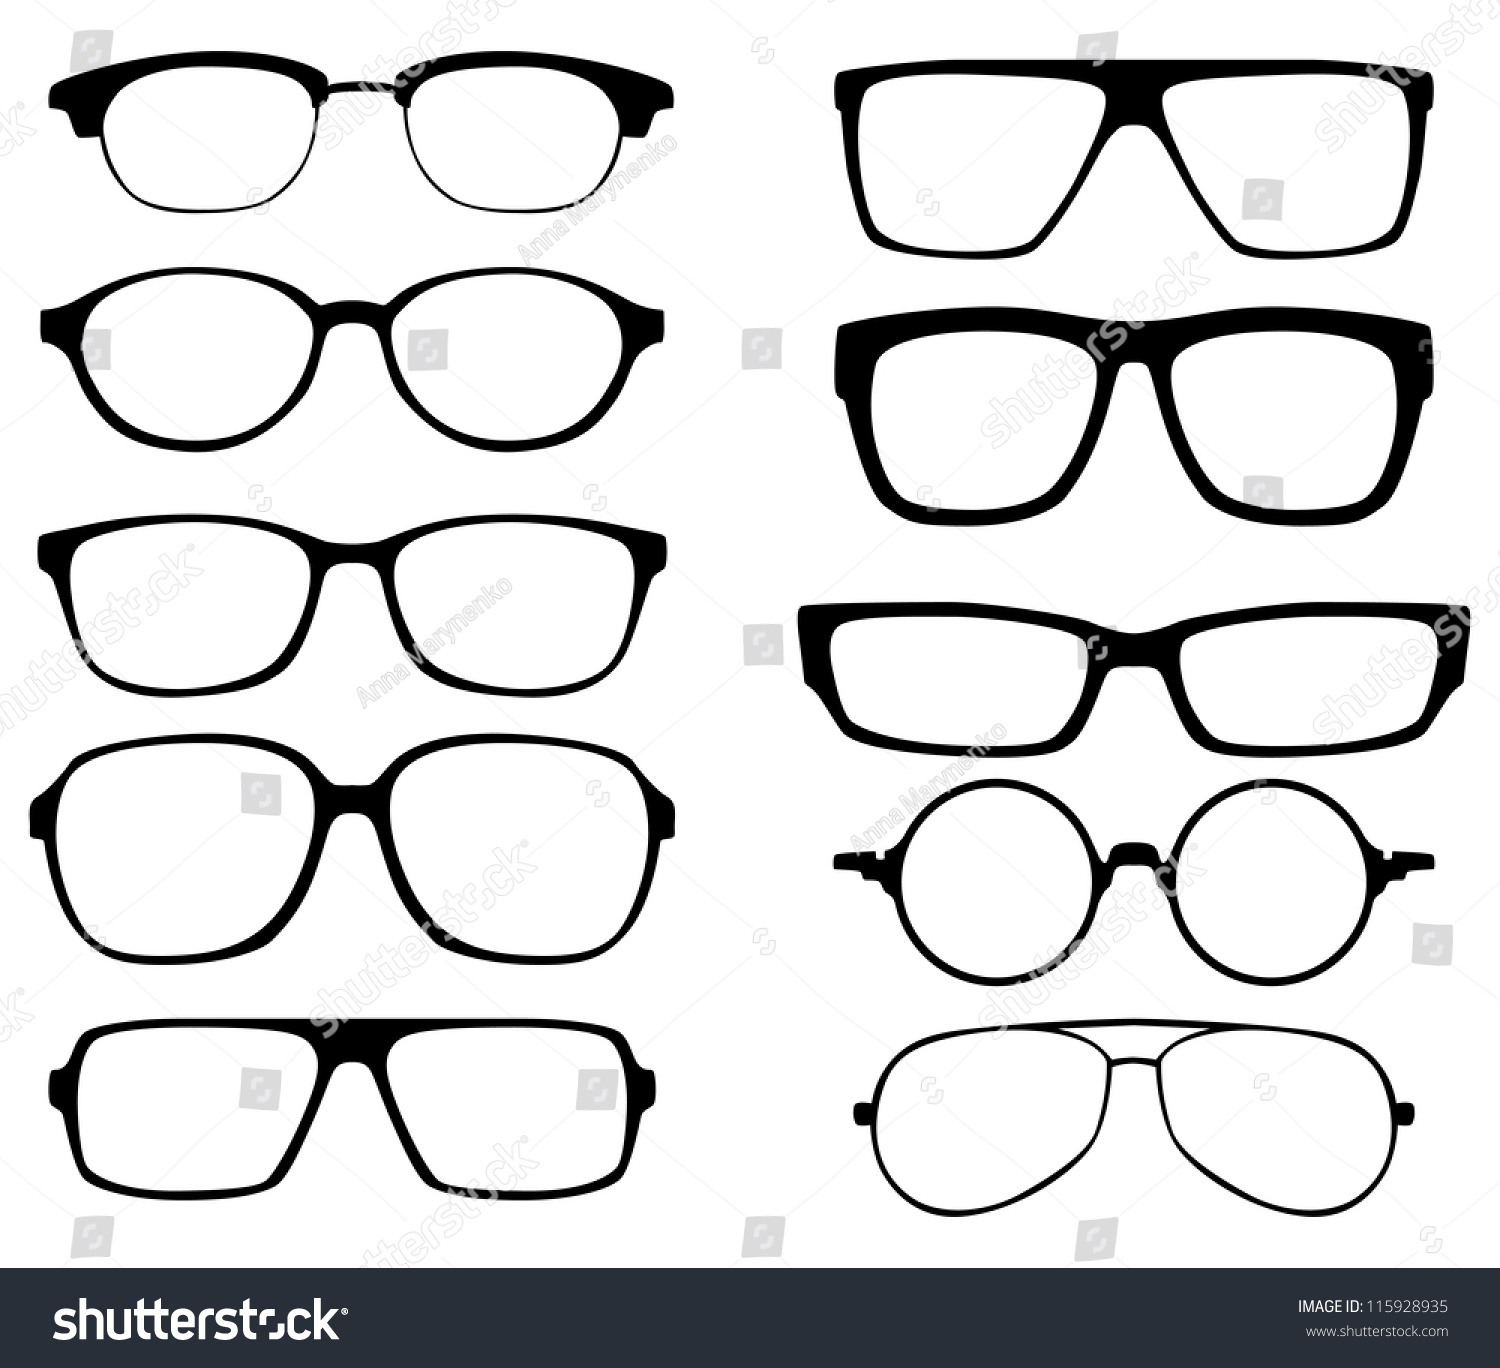 Black Frame Glasses Vector : Glasses Vector Set. Retro, Wayfarer, Aviator Frames ...